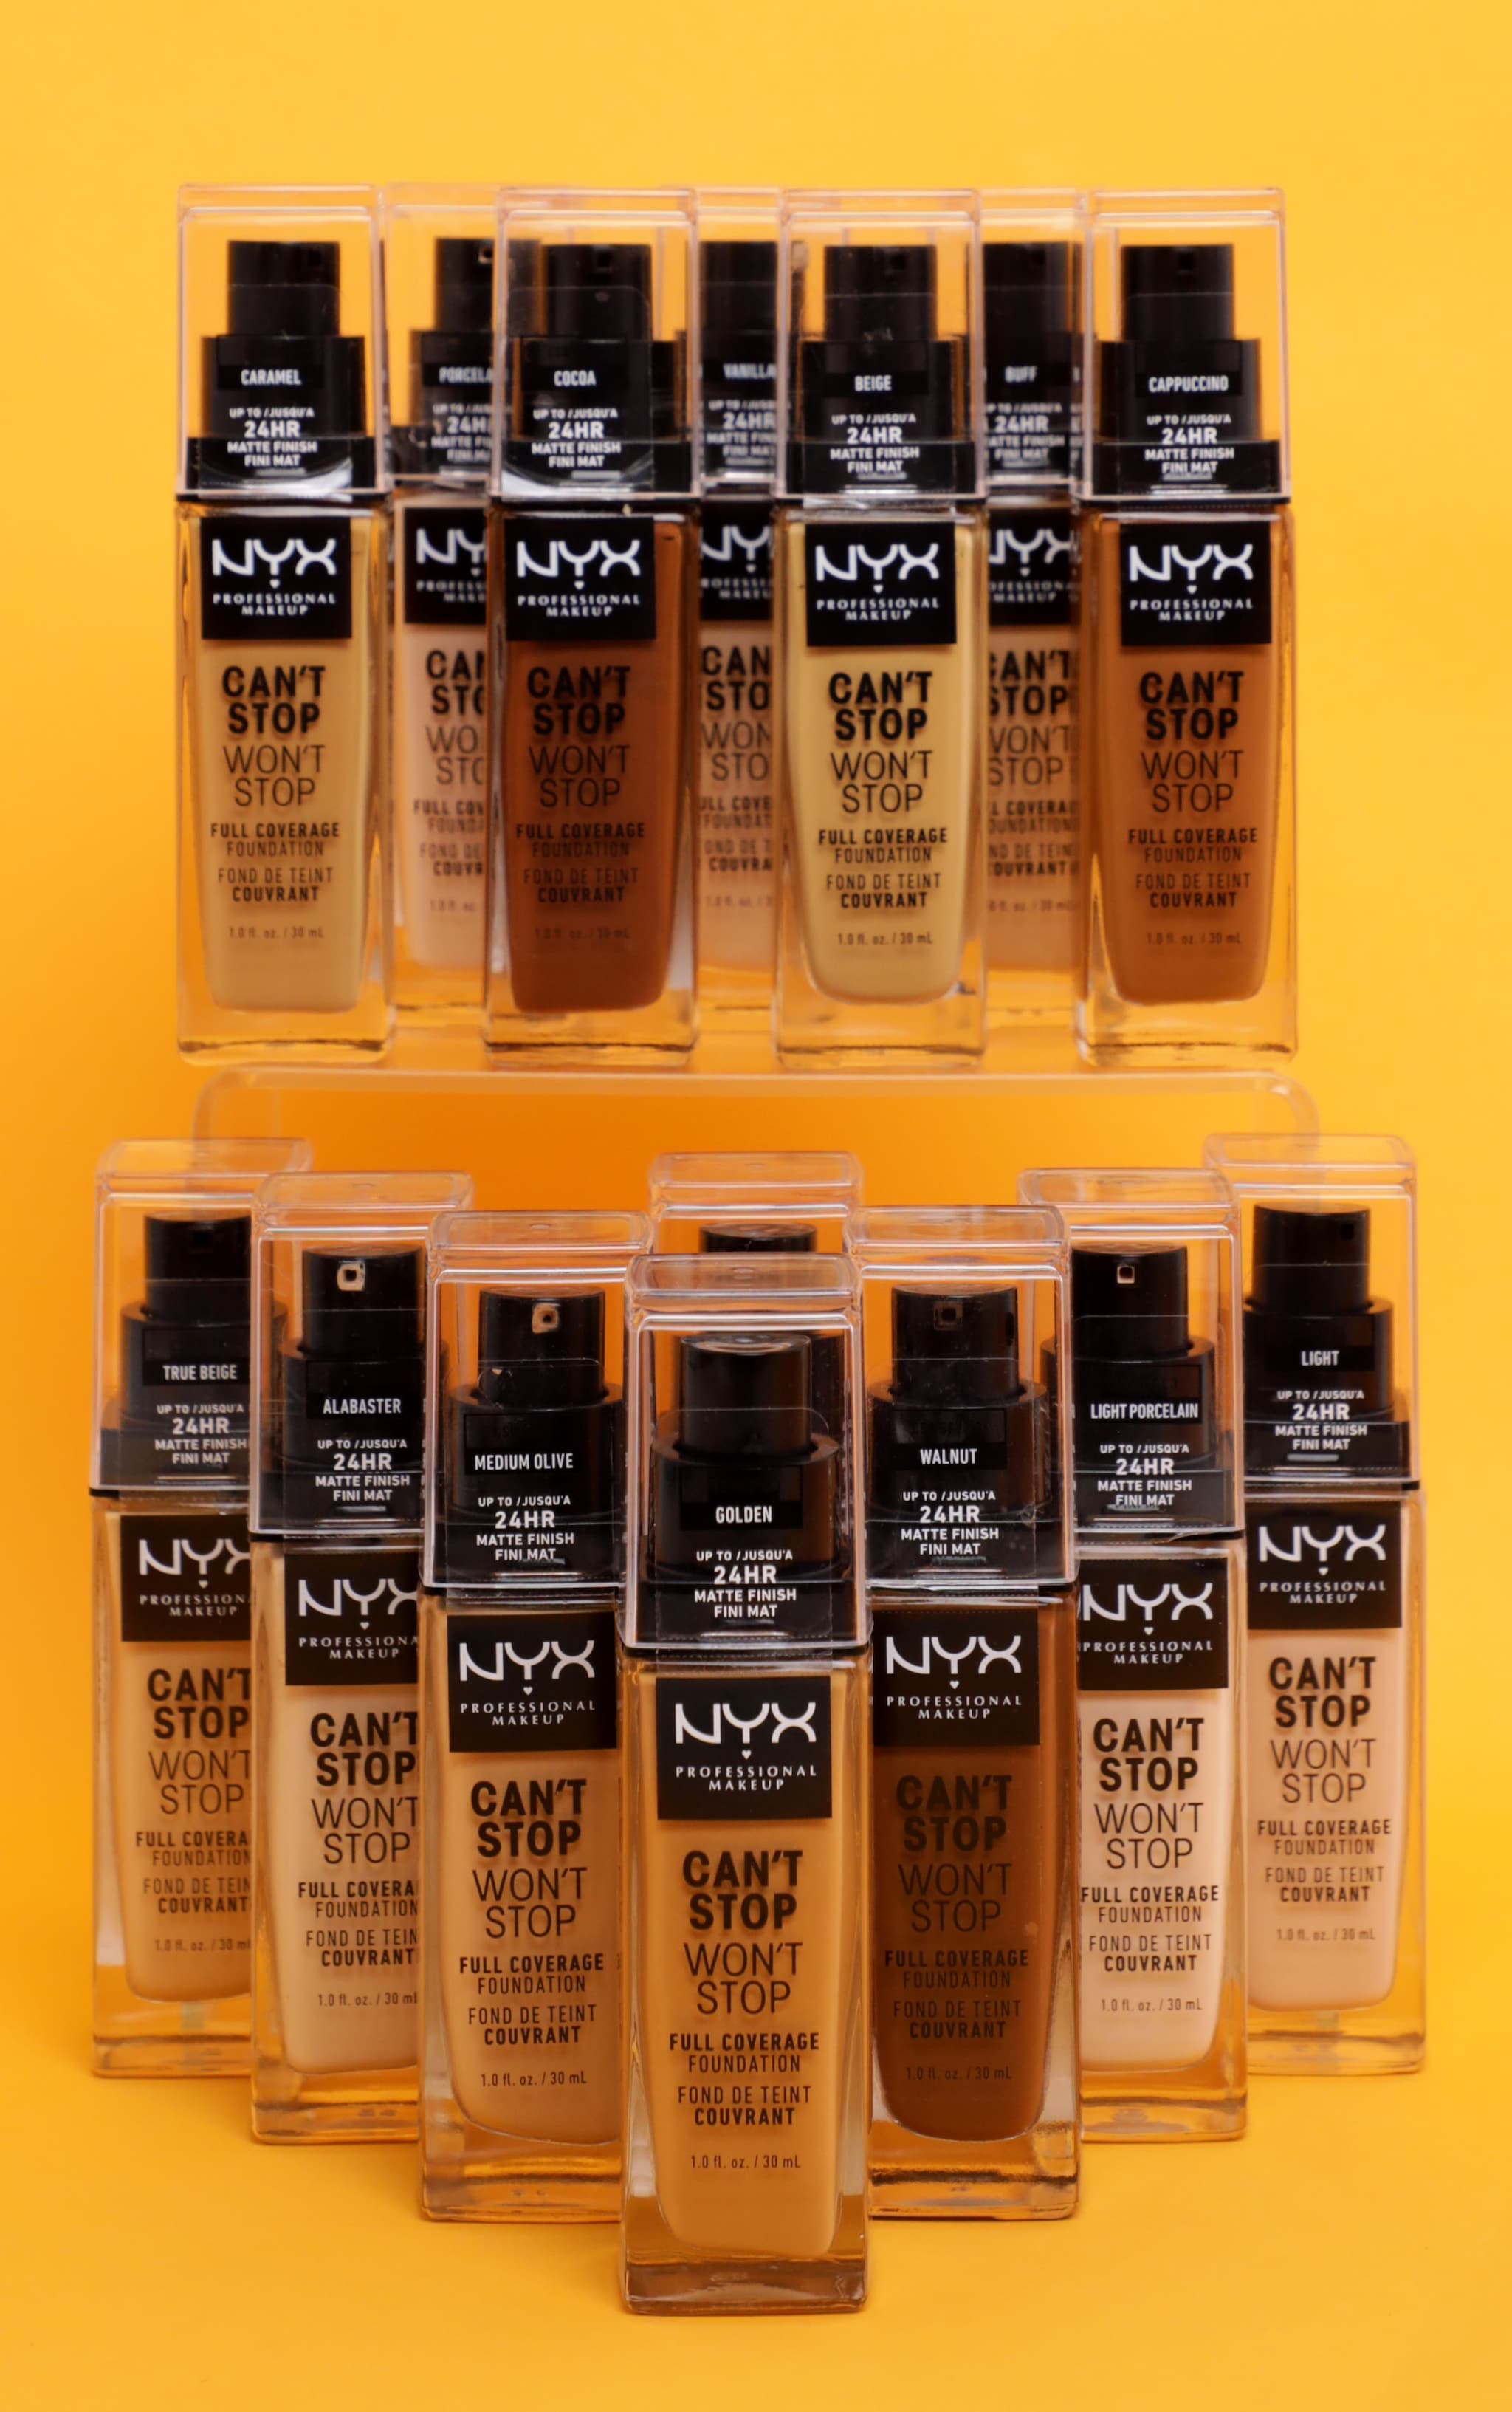 NYX PMU Can't Stop Won't Stop Full Coverage Foundation Caramel 3